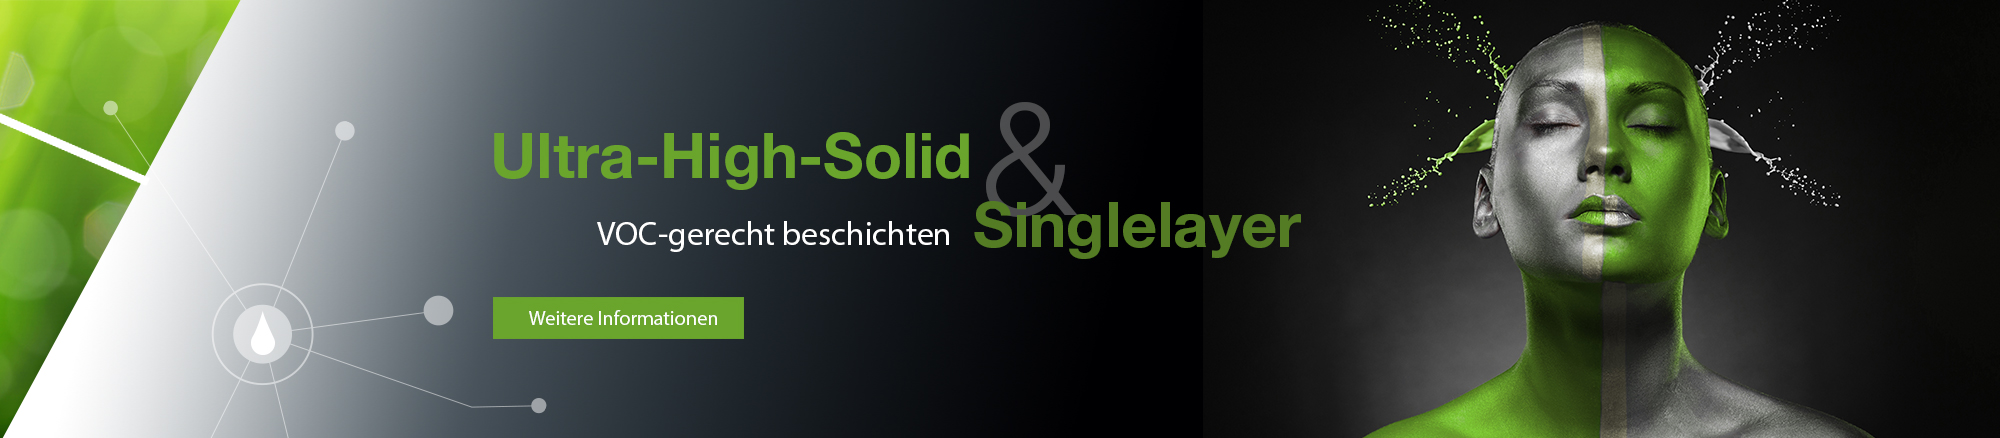 FreiLacke Ultra-High-Solid und Singlelayer